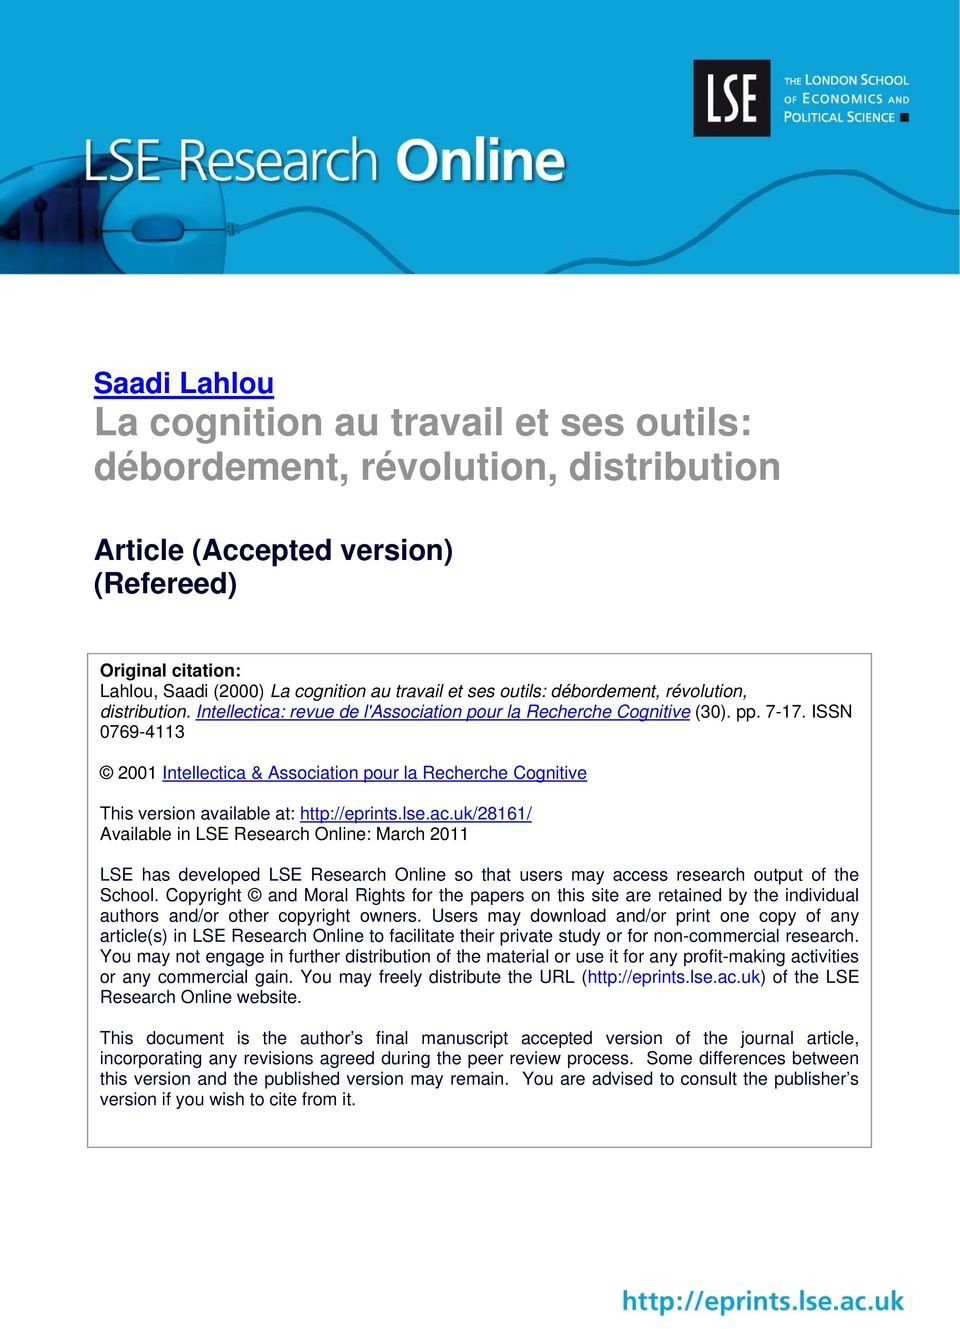 ISSN 0769-4113 2001 Intellectica & Association pour la Recherche Cognitive This version available at: http://eprints.lse.ac.